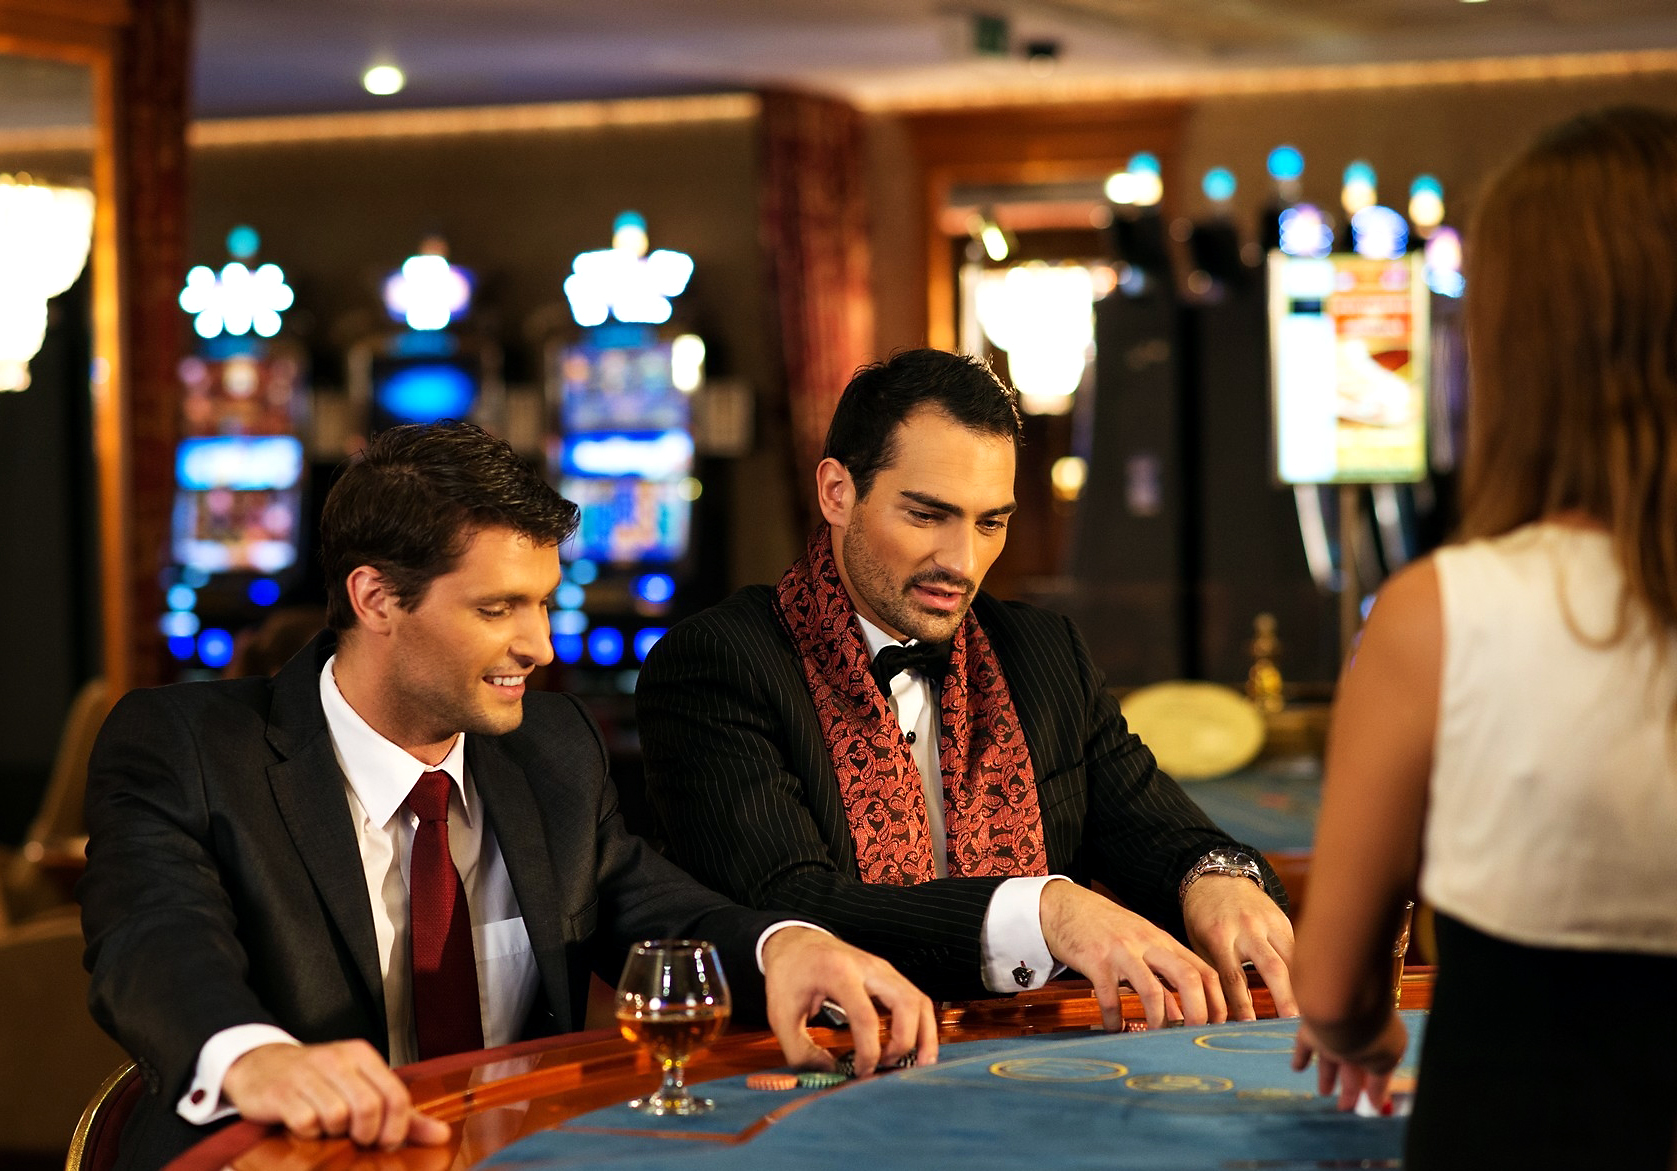 Why do you lose more than win in casinos? - (About Casino ...